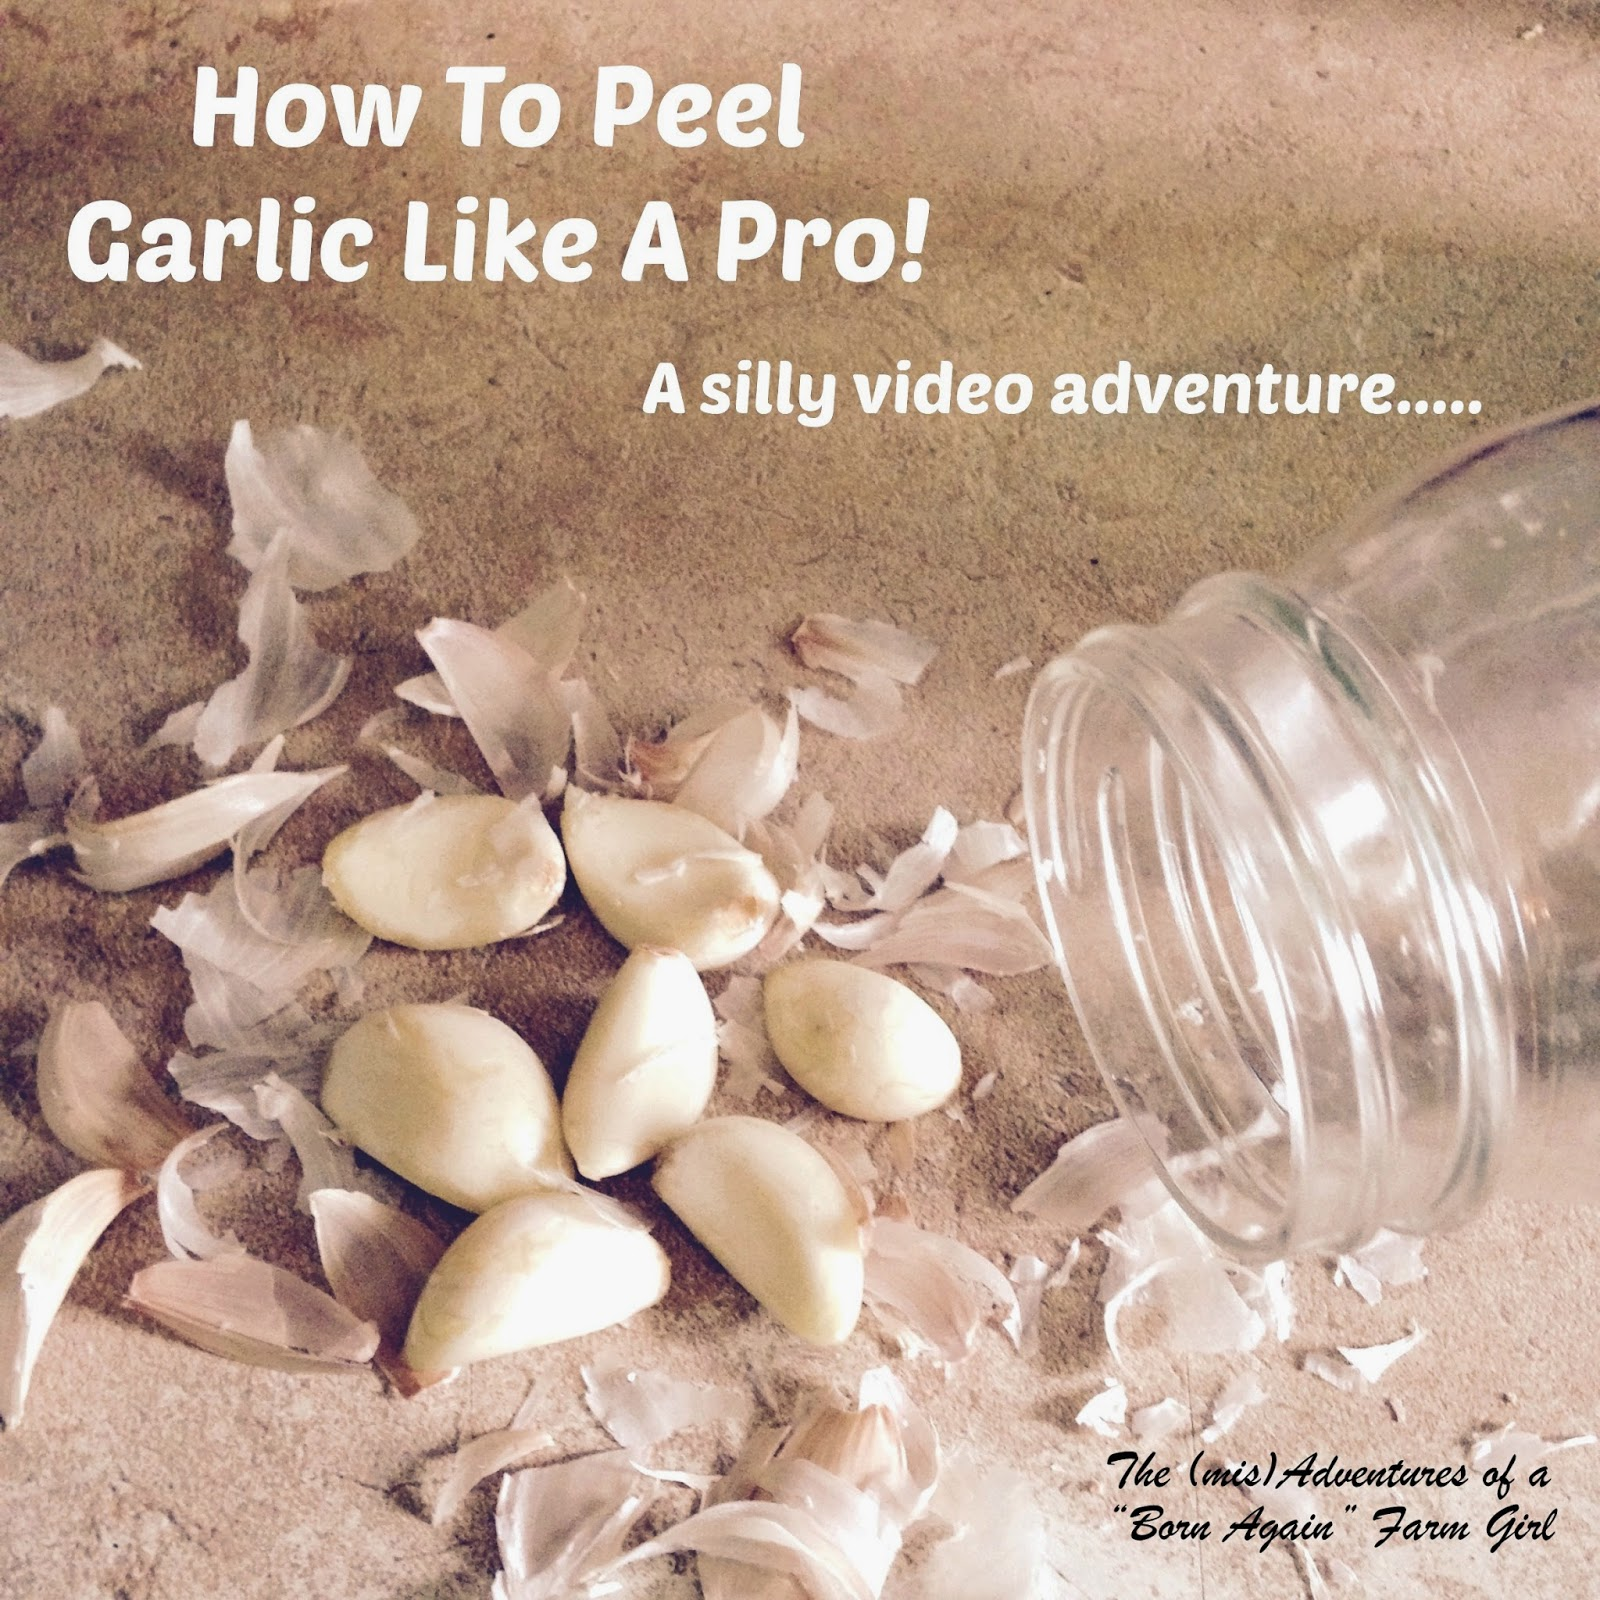 How To Peel Garlic Like A Pro!